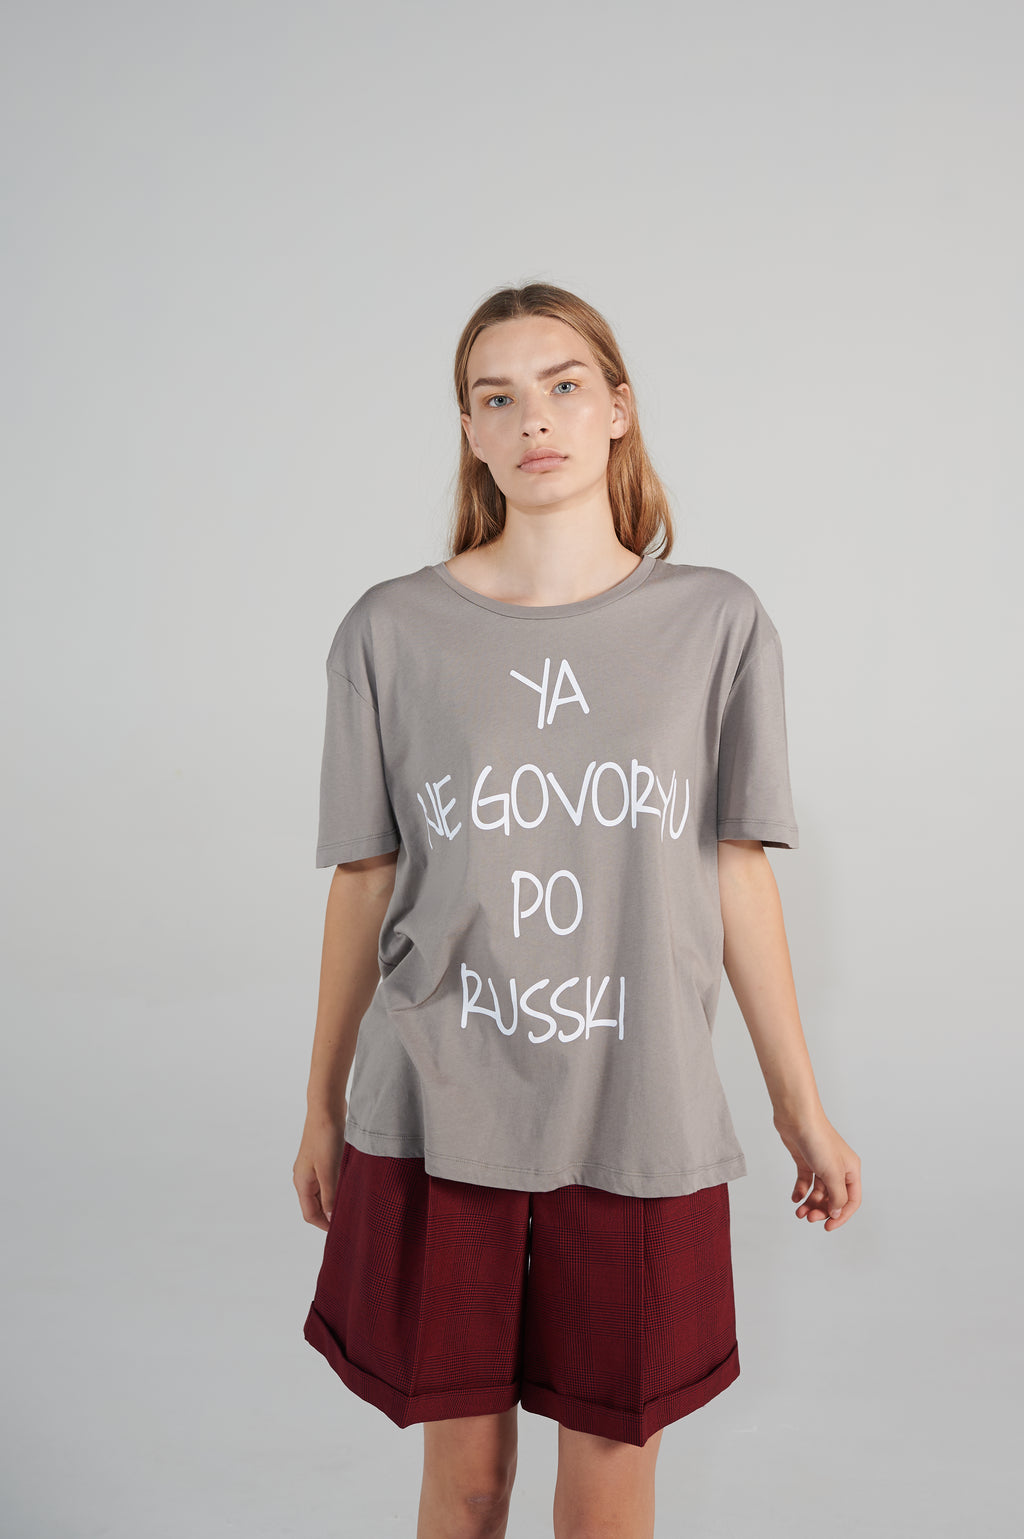 Le SLAP RUSSKI grey organic cotton t-shirt madress